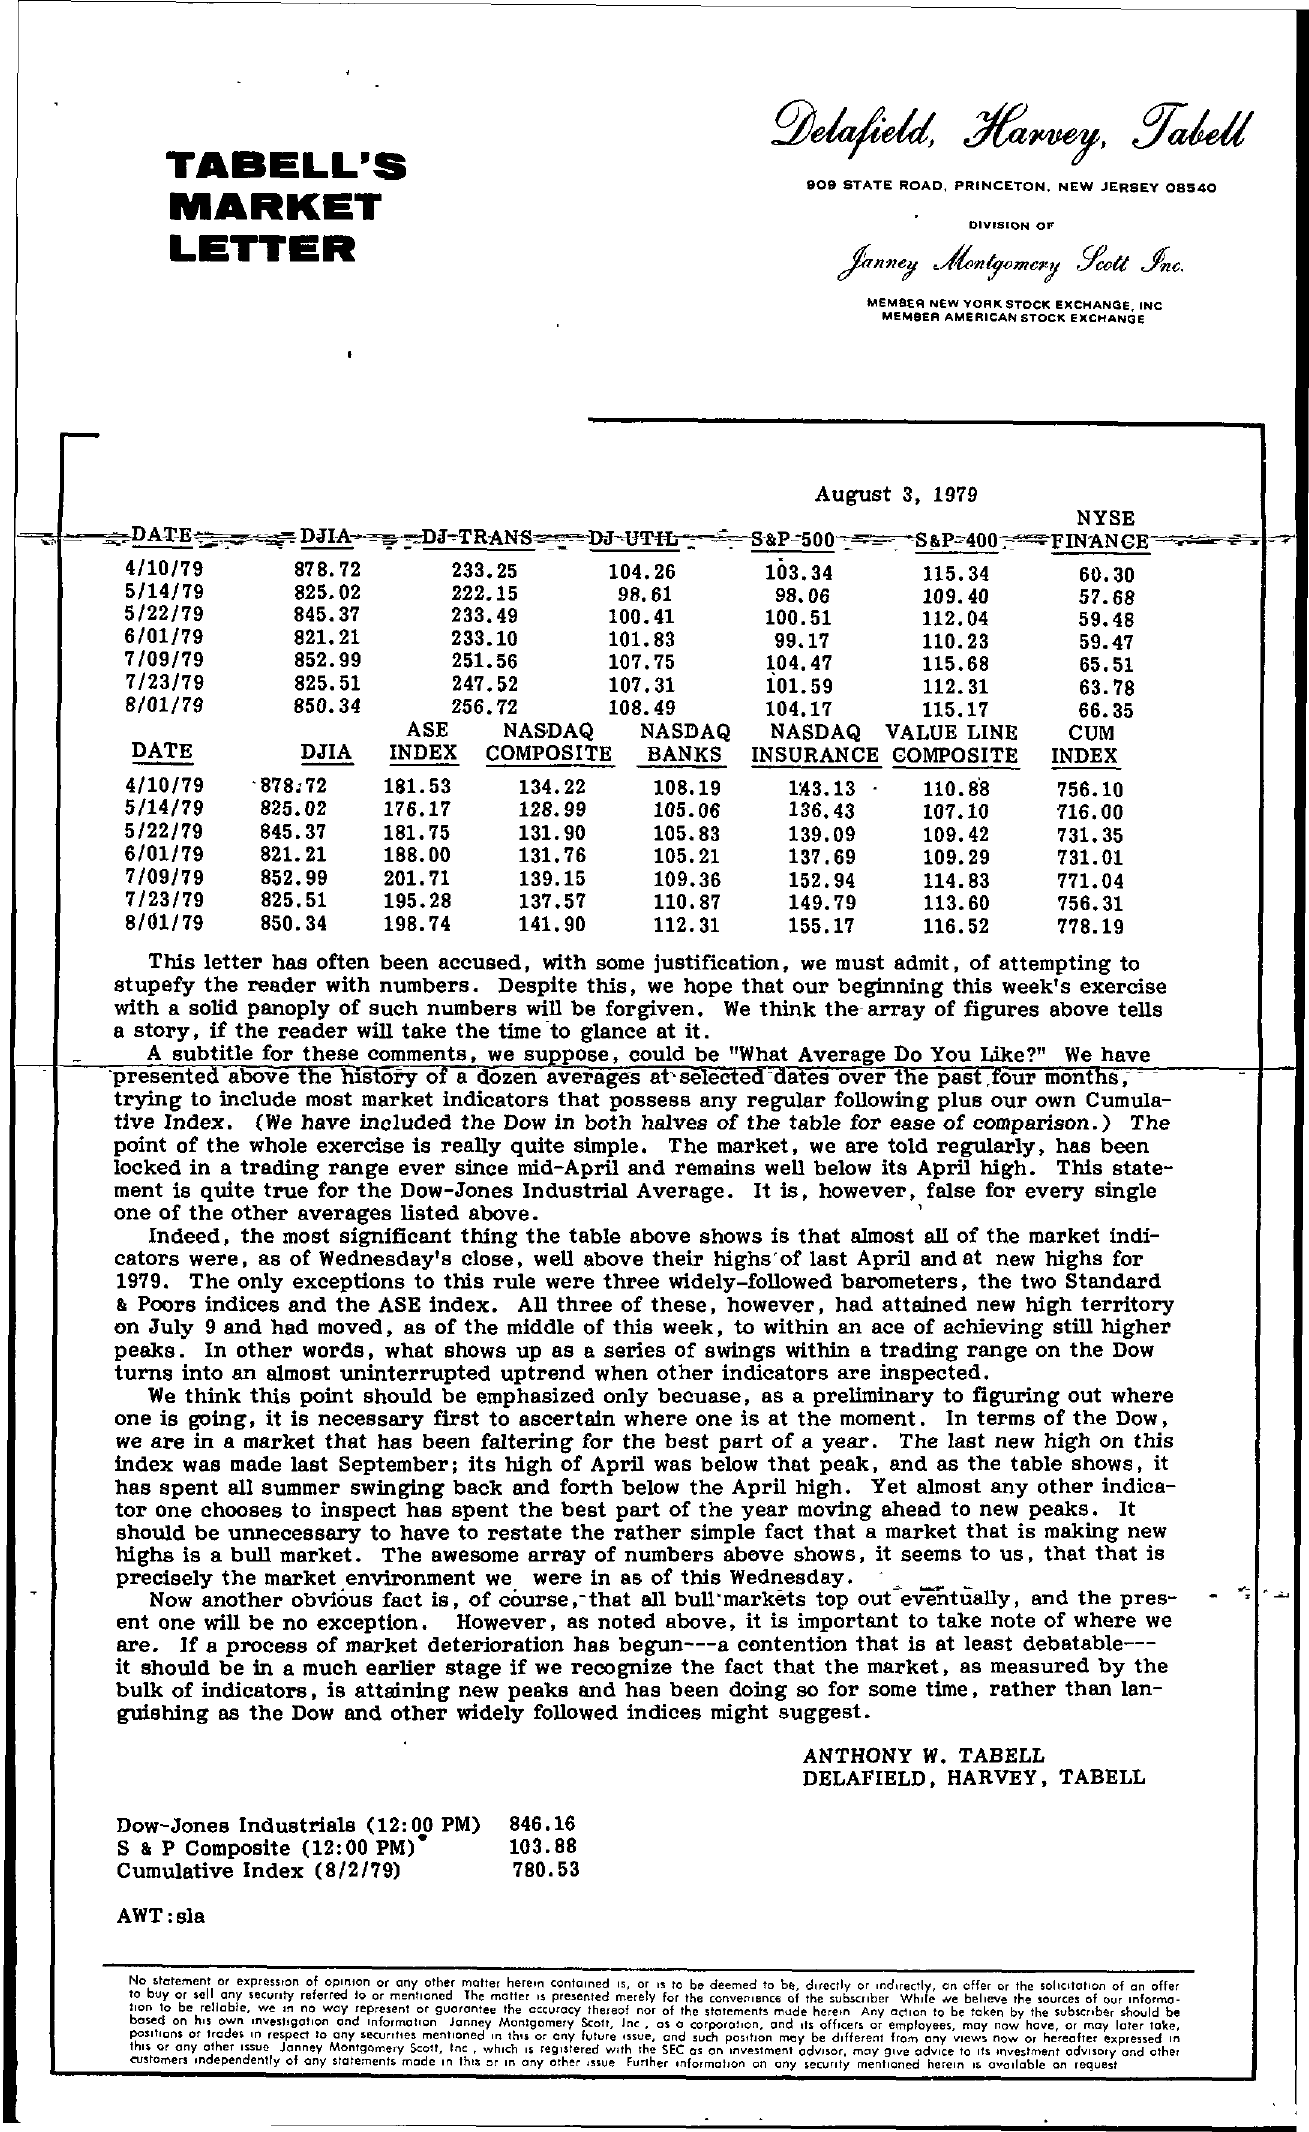 Tabell's Market Letter - August 03, 1979